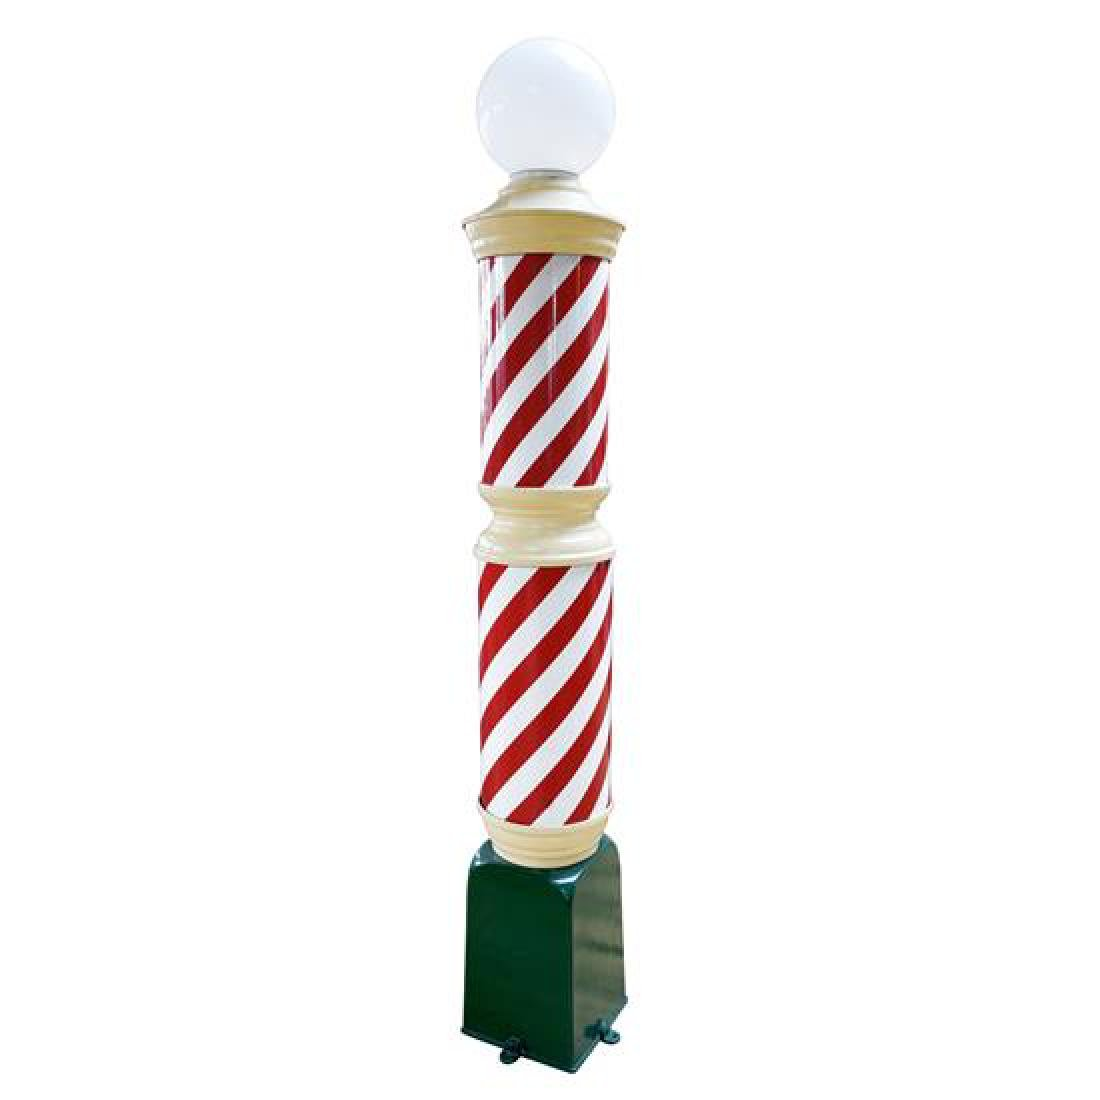 """A Metal and Glass Barber Pole 12"""" W x 12"""" D x 89"""" H - 3"""